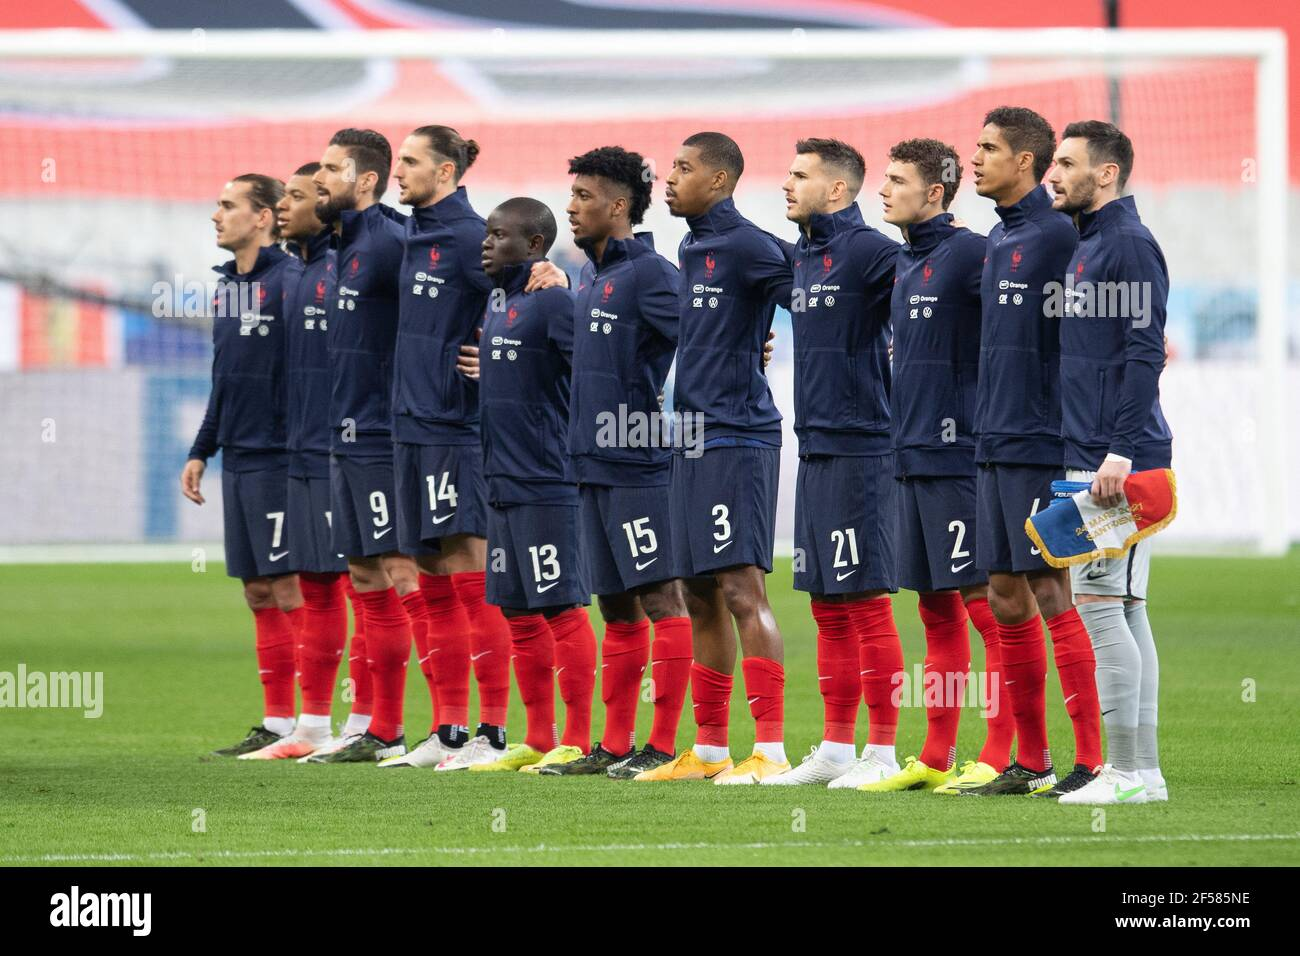 France national team fixture,lineup,tactics,formations,score and results. Team Of France Line Up L R Antoine Griezmann Of France Kylian Mbappe Of France Olivier Giroud Of France Adrien Rabiot Of France Ngolo Kante Of France Kingsley Coman Of France Presnel